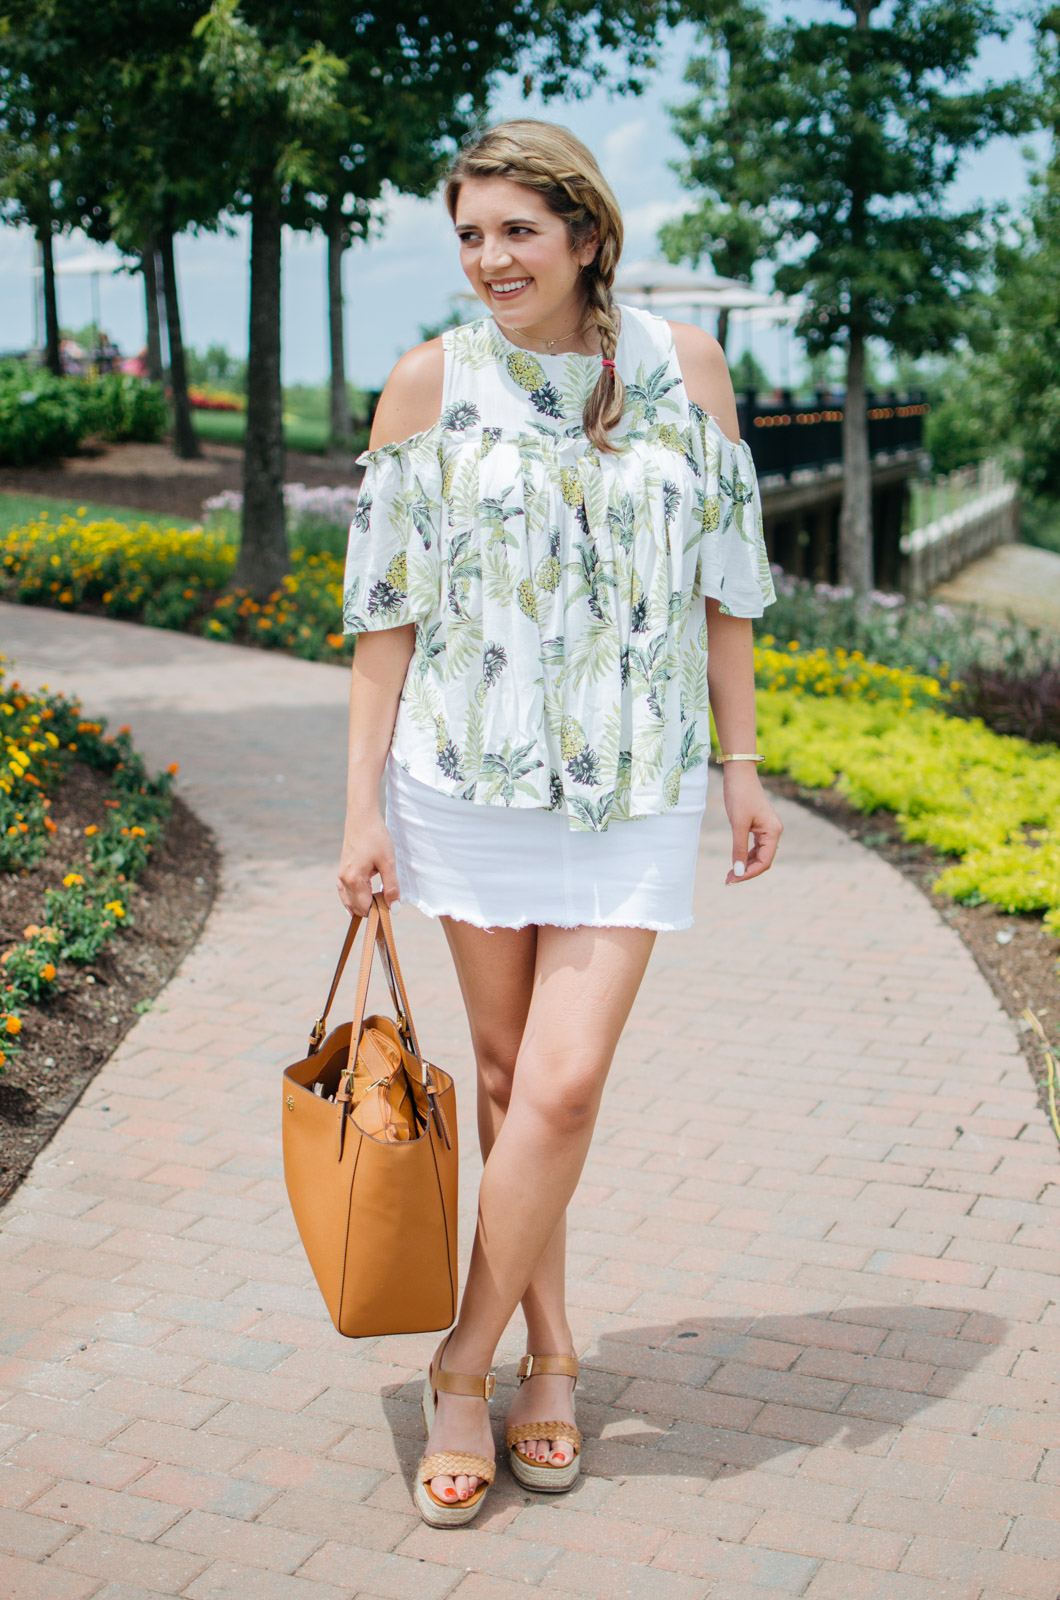 mini skirt outfit - denim mini skirt and pineapple top | For more of the best Summer outfit ideas, head to bylaurenm.com